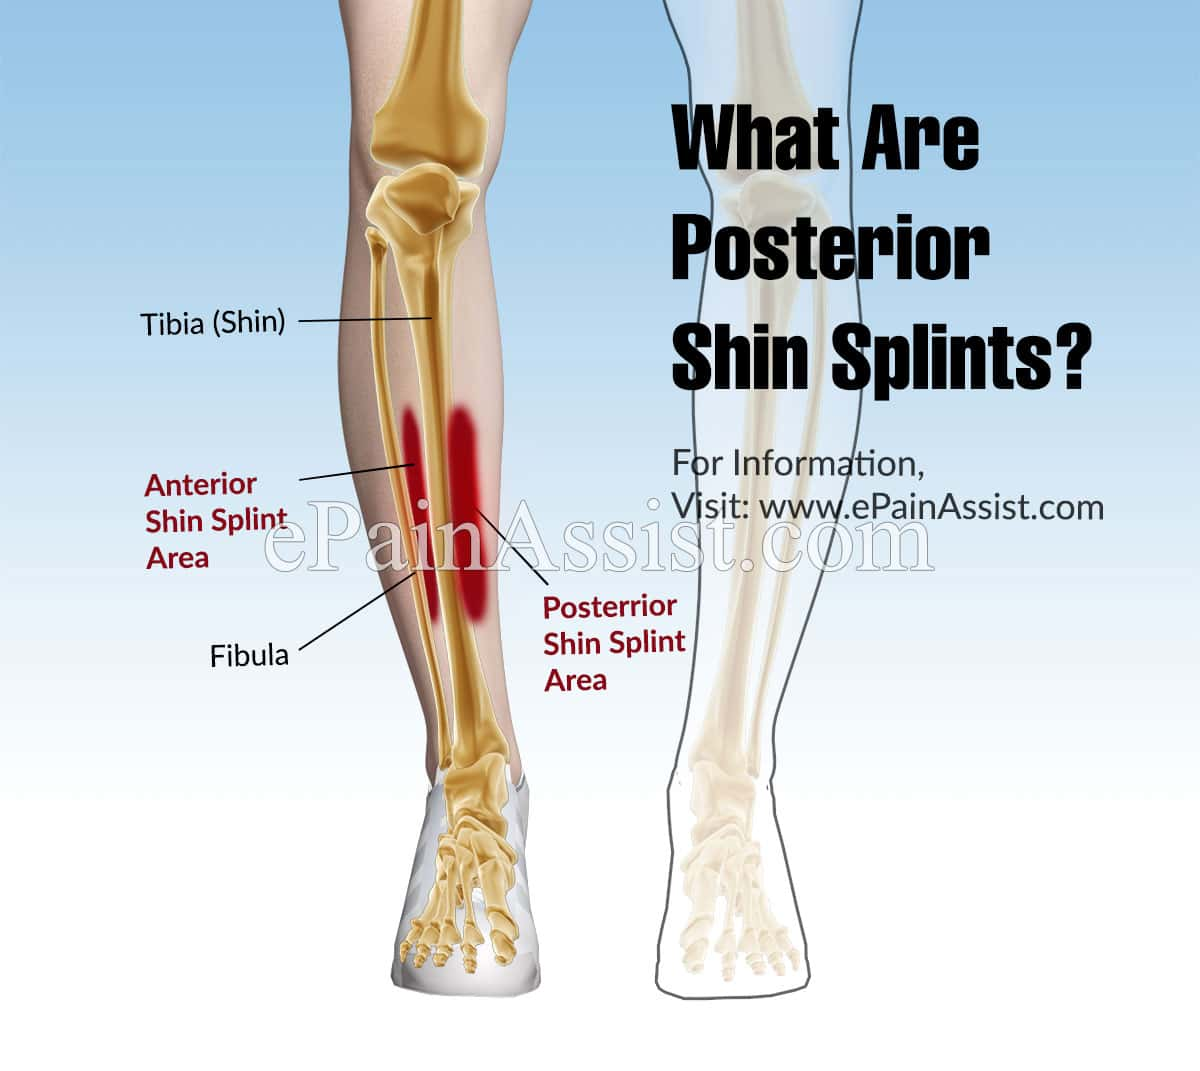 What Are Posterior Shin Splints?